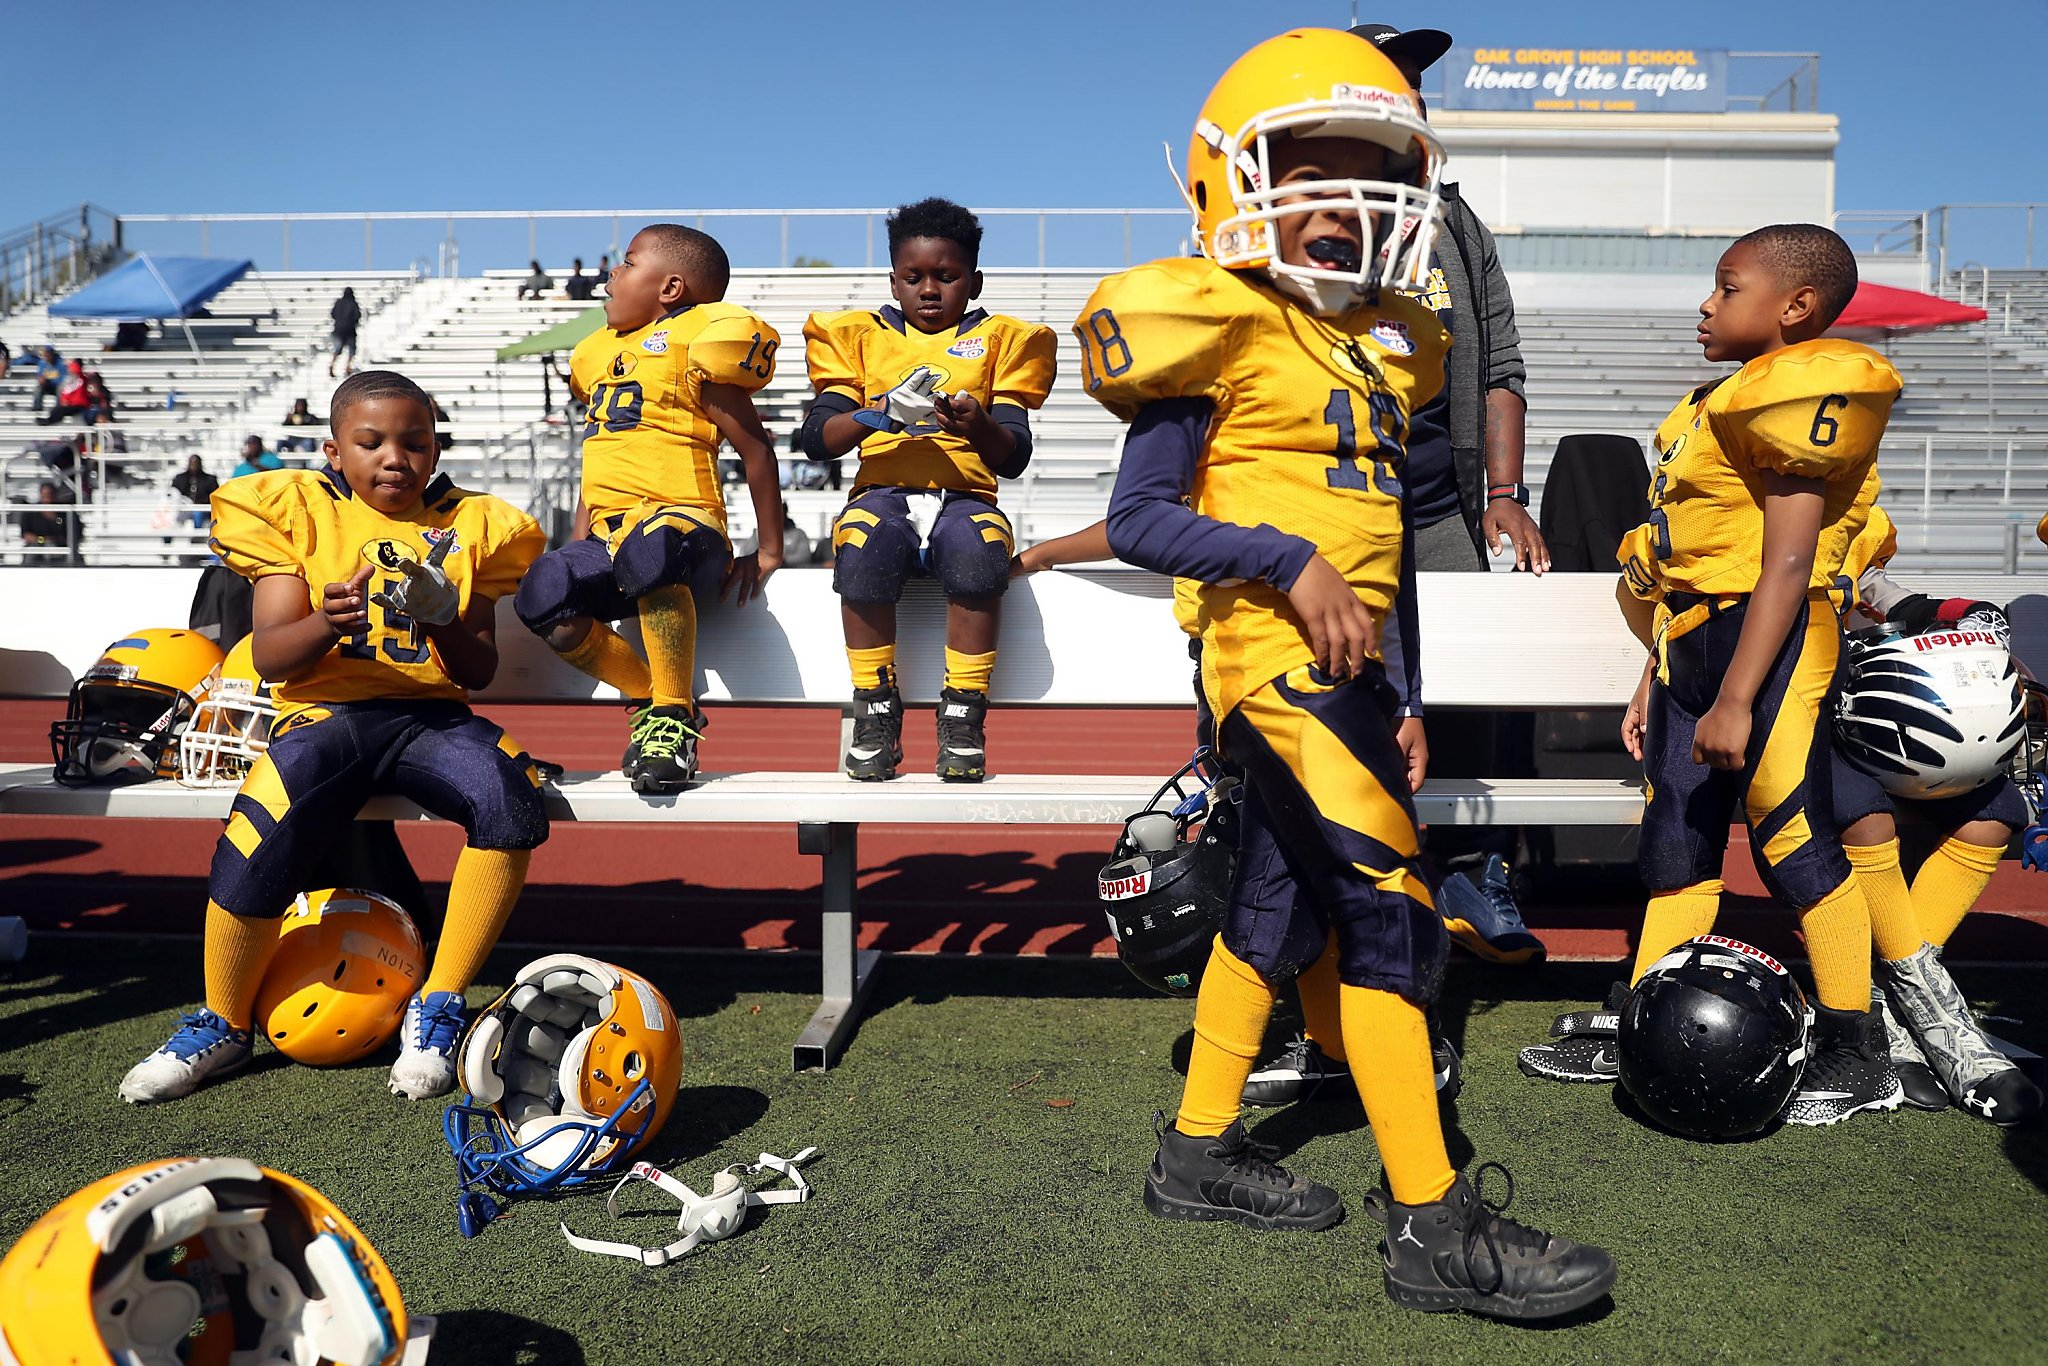 The Future of Football: Why fewer kids are playing football